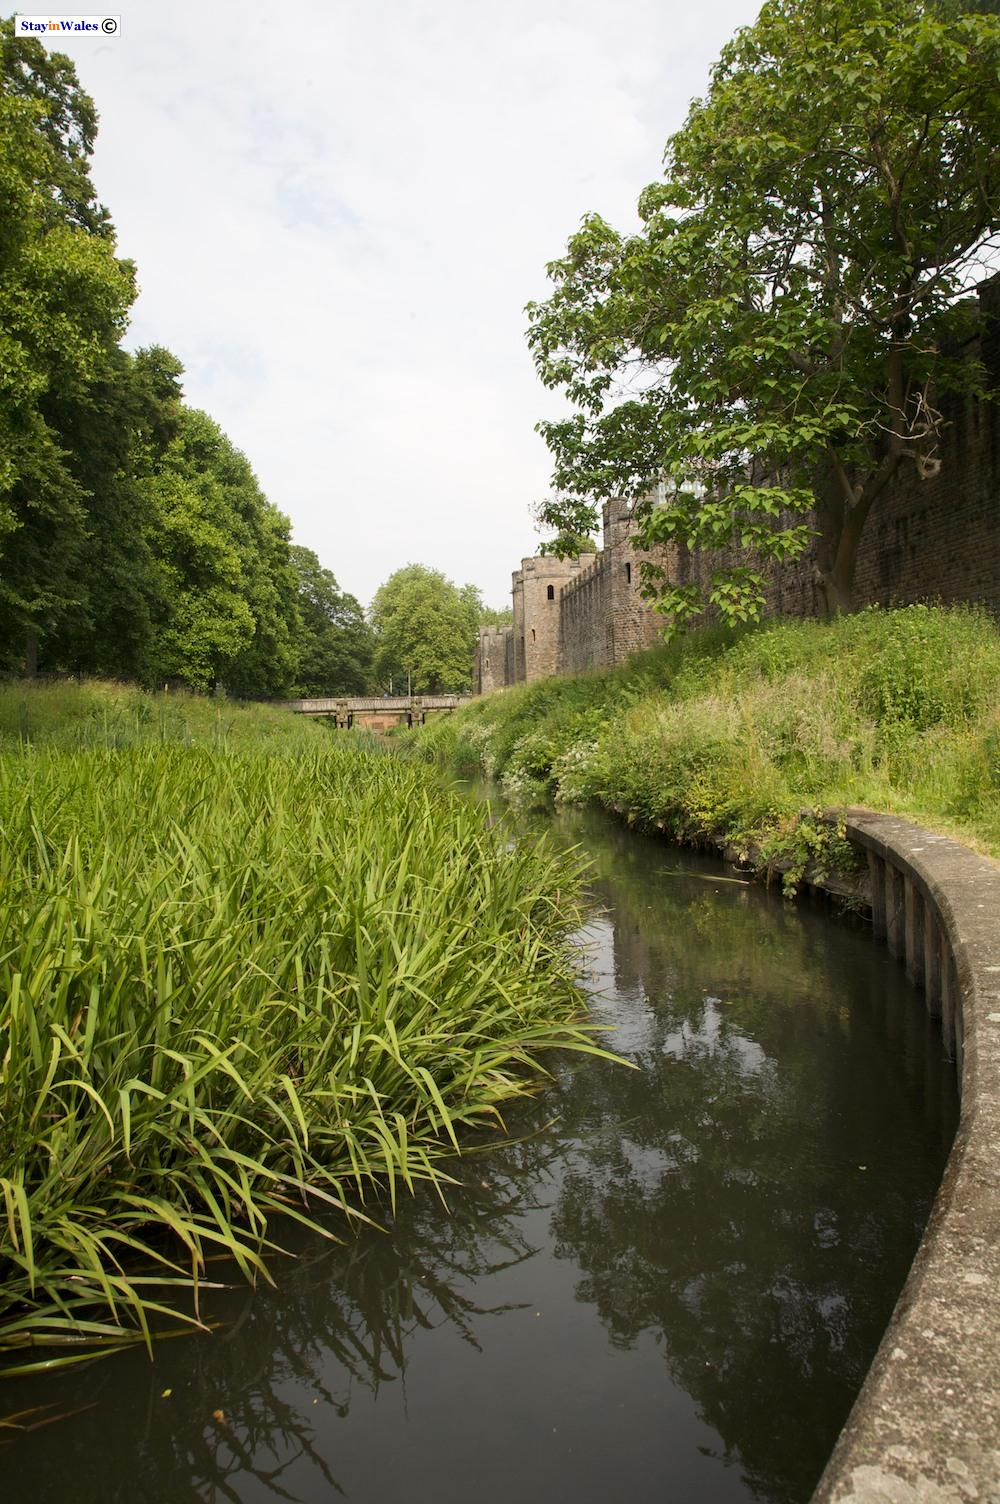 Cardiff Castle Moat